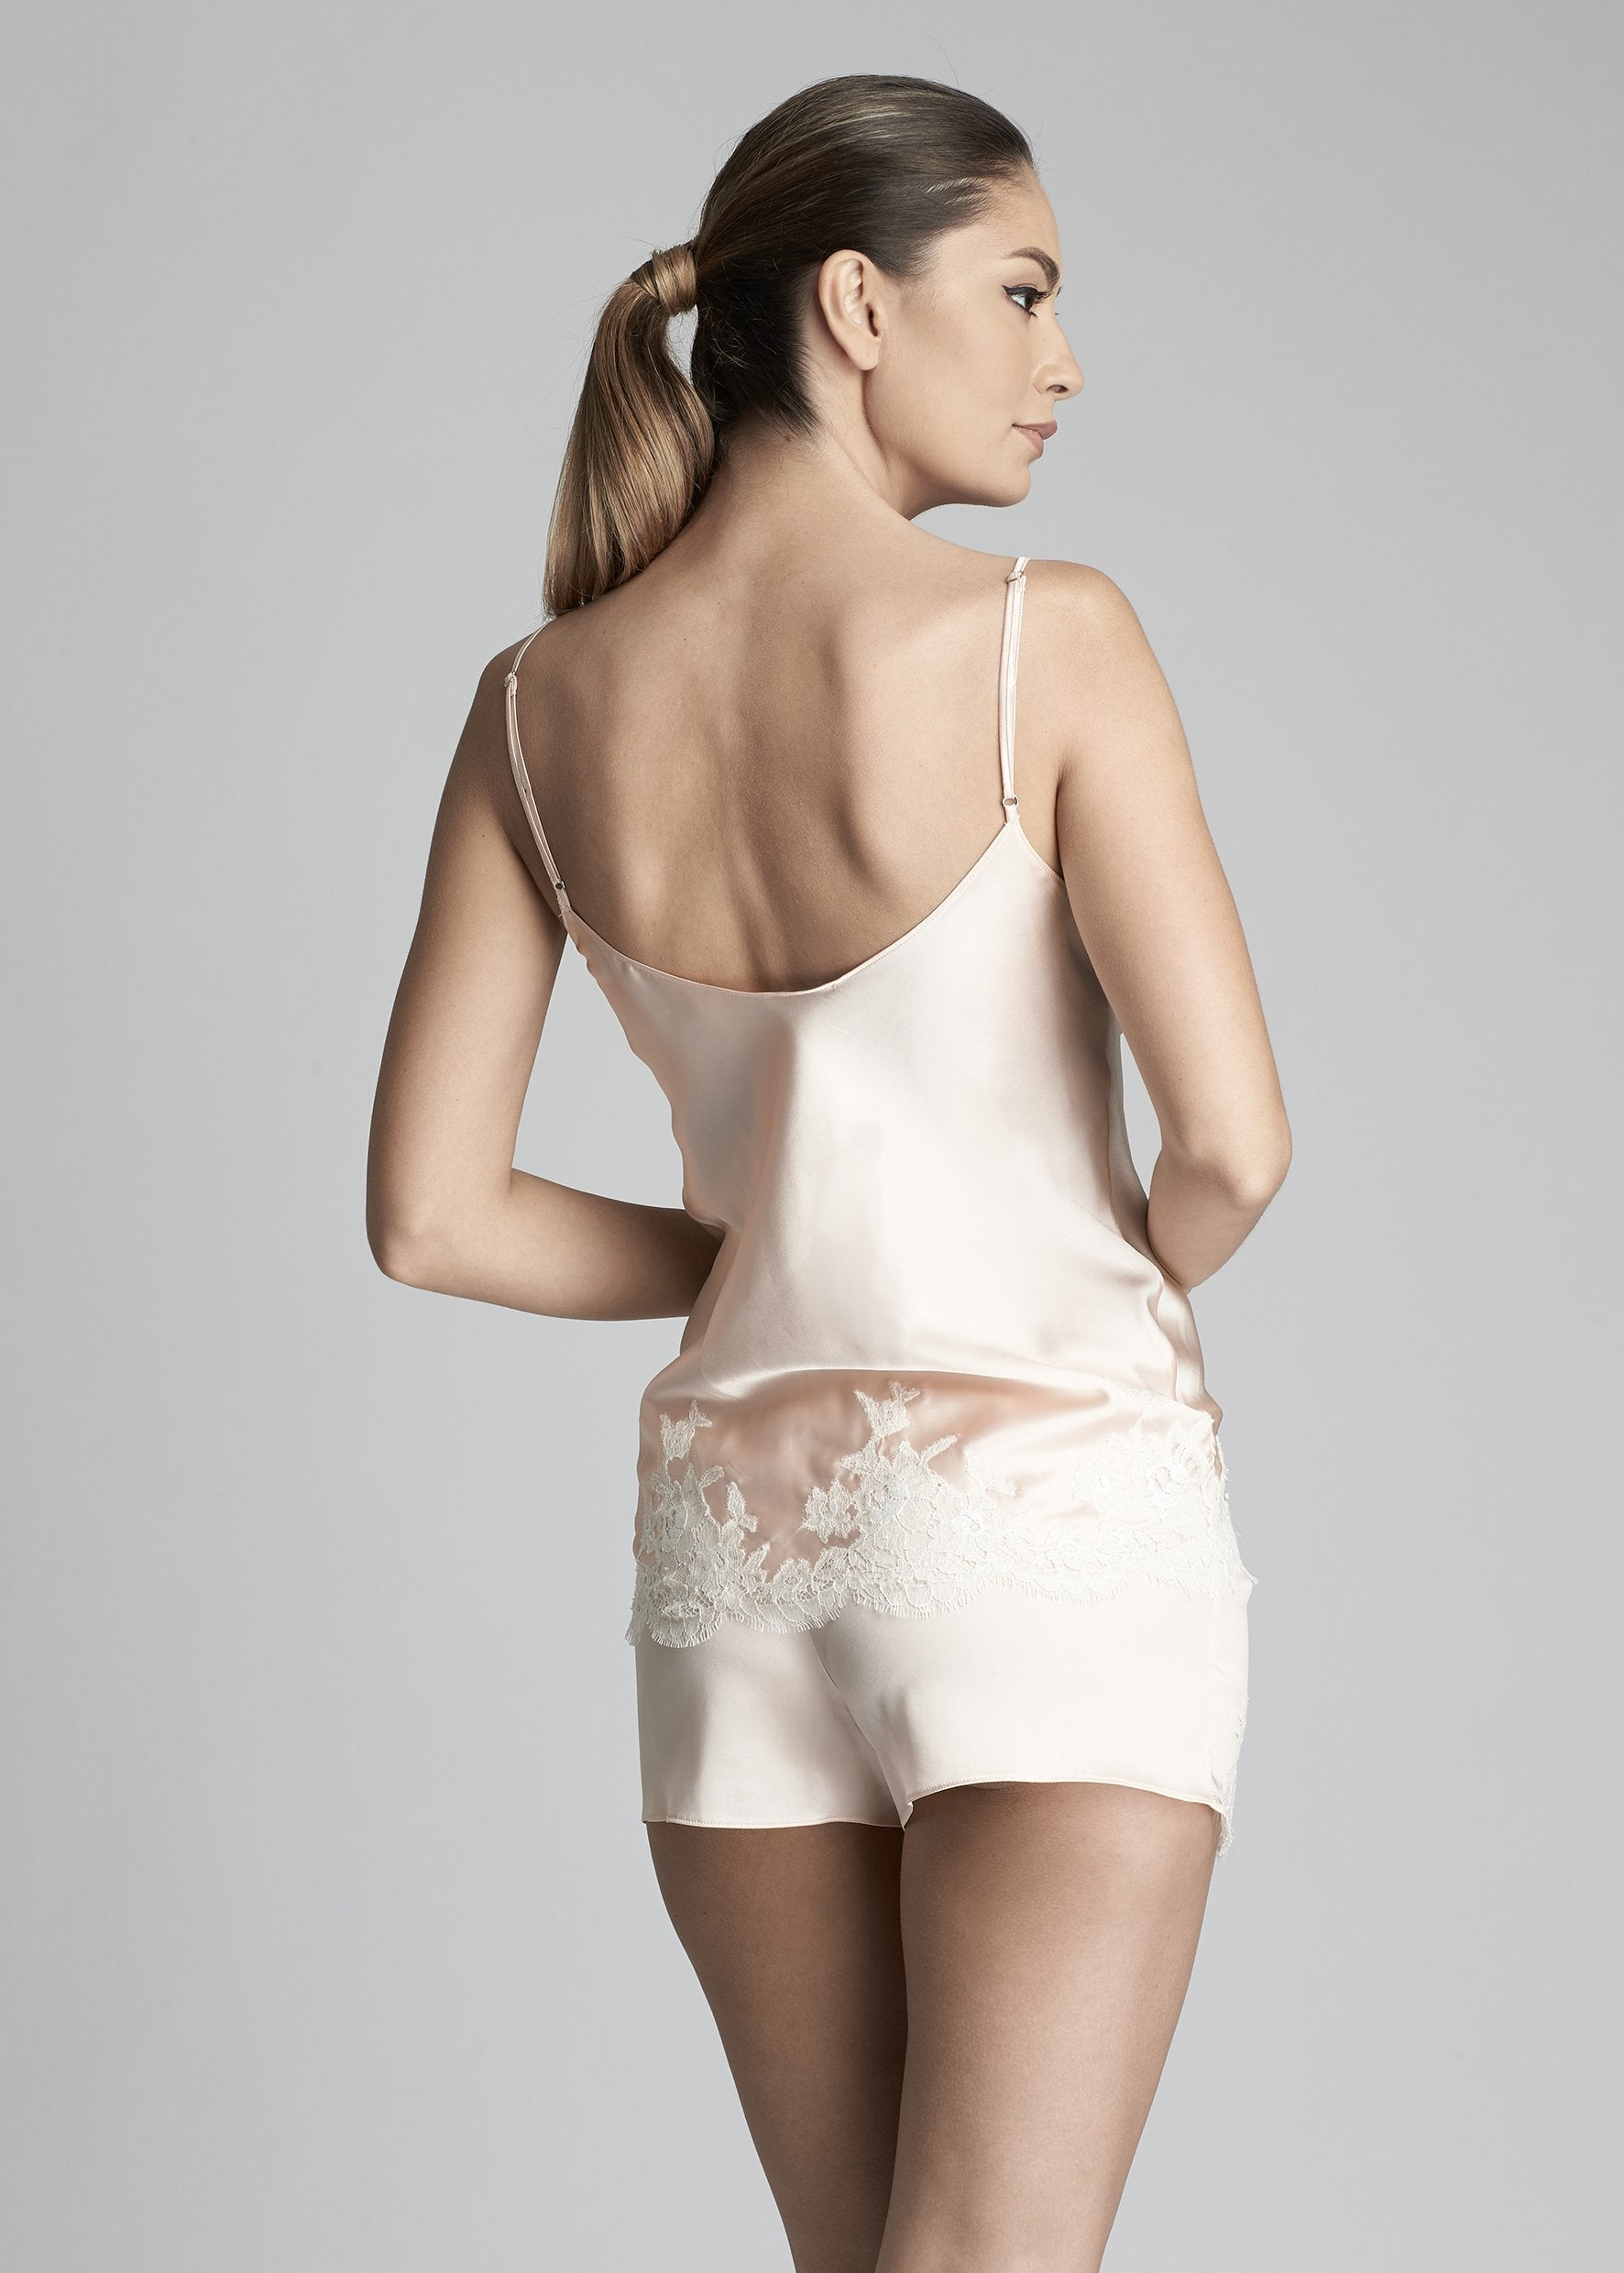 Hôtel Particulier Shorts in Peach Rose - I.D. Sarrieri